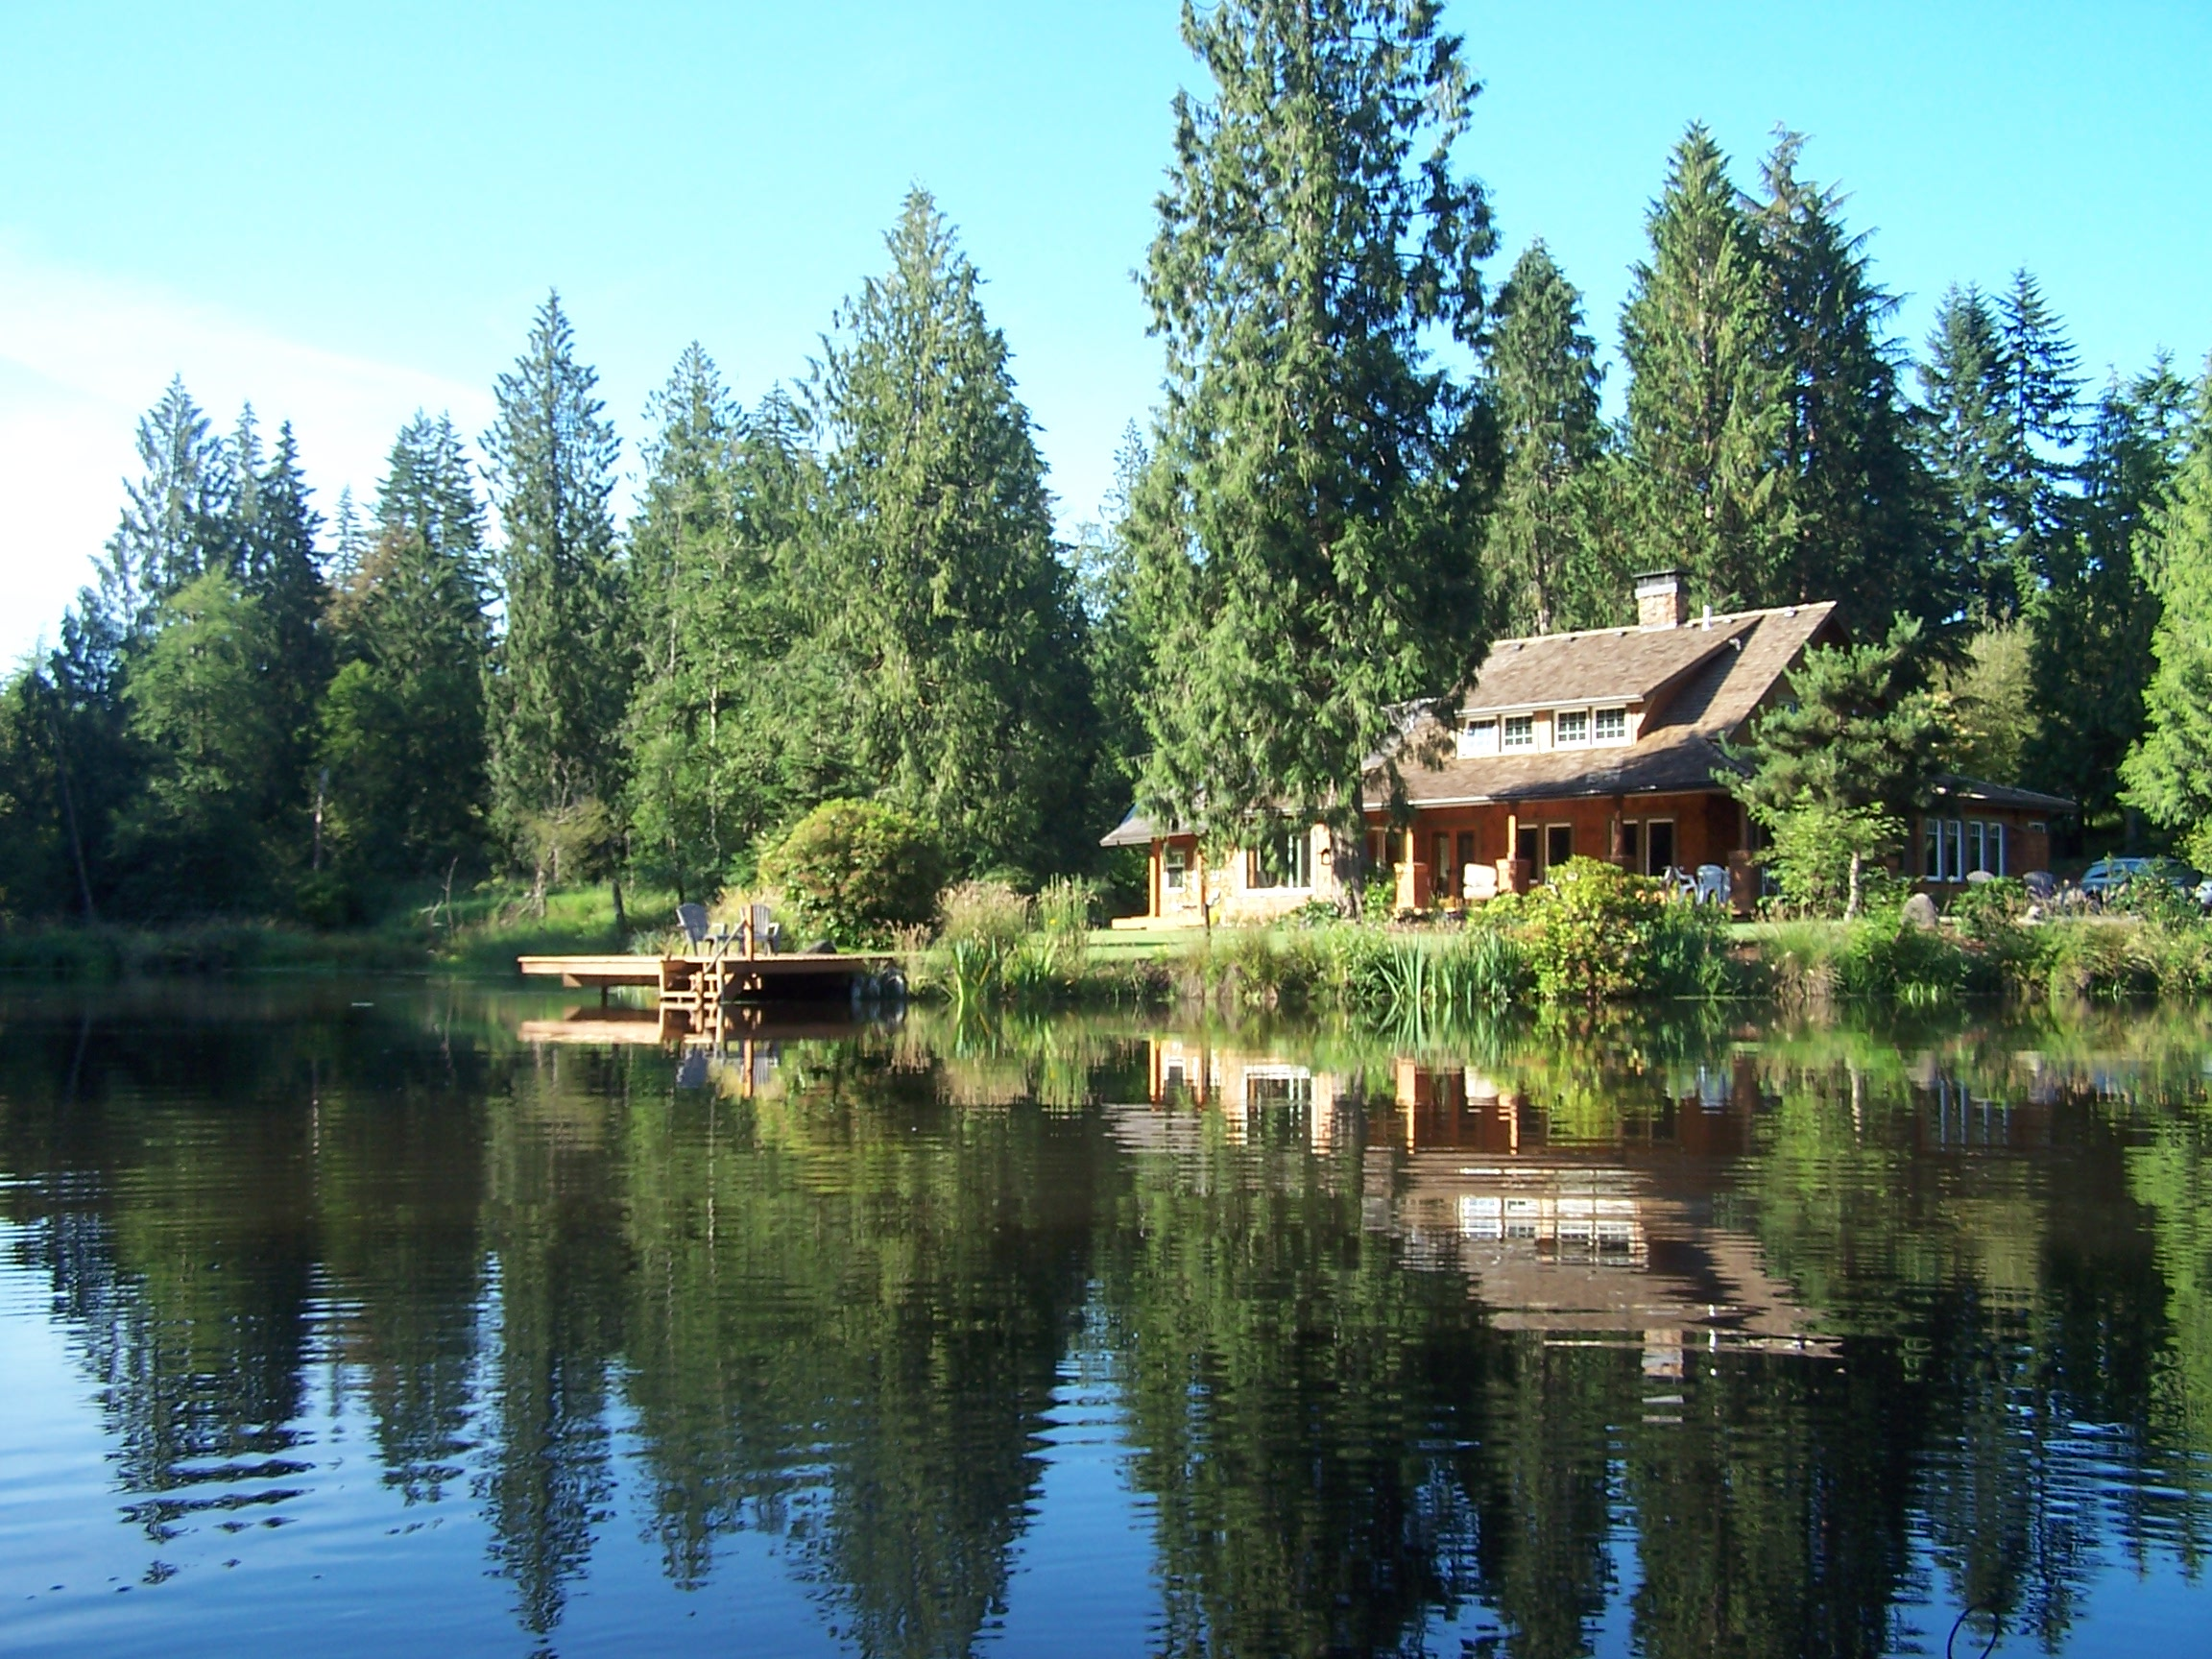 Retreat centers similar to  Hidden Lake Retreat Center , are optimal for gathering (unfortunately, Hidden Lake is not longer available.)